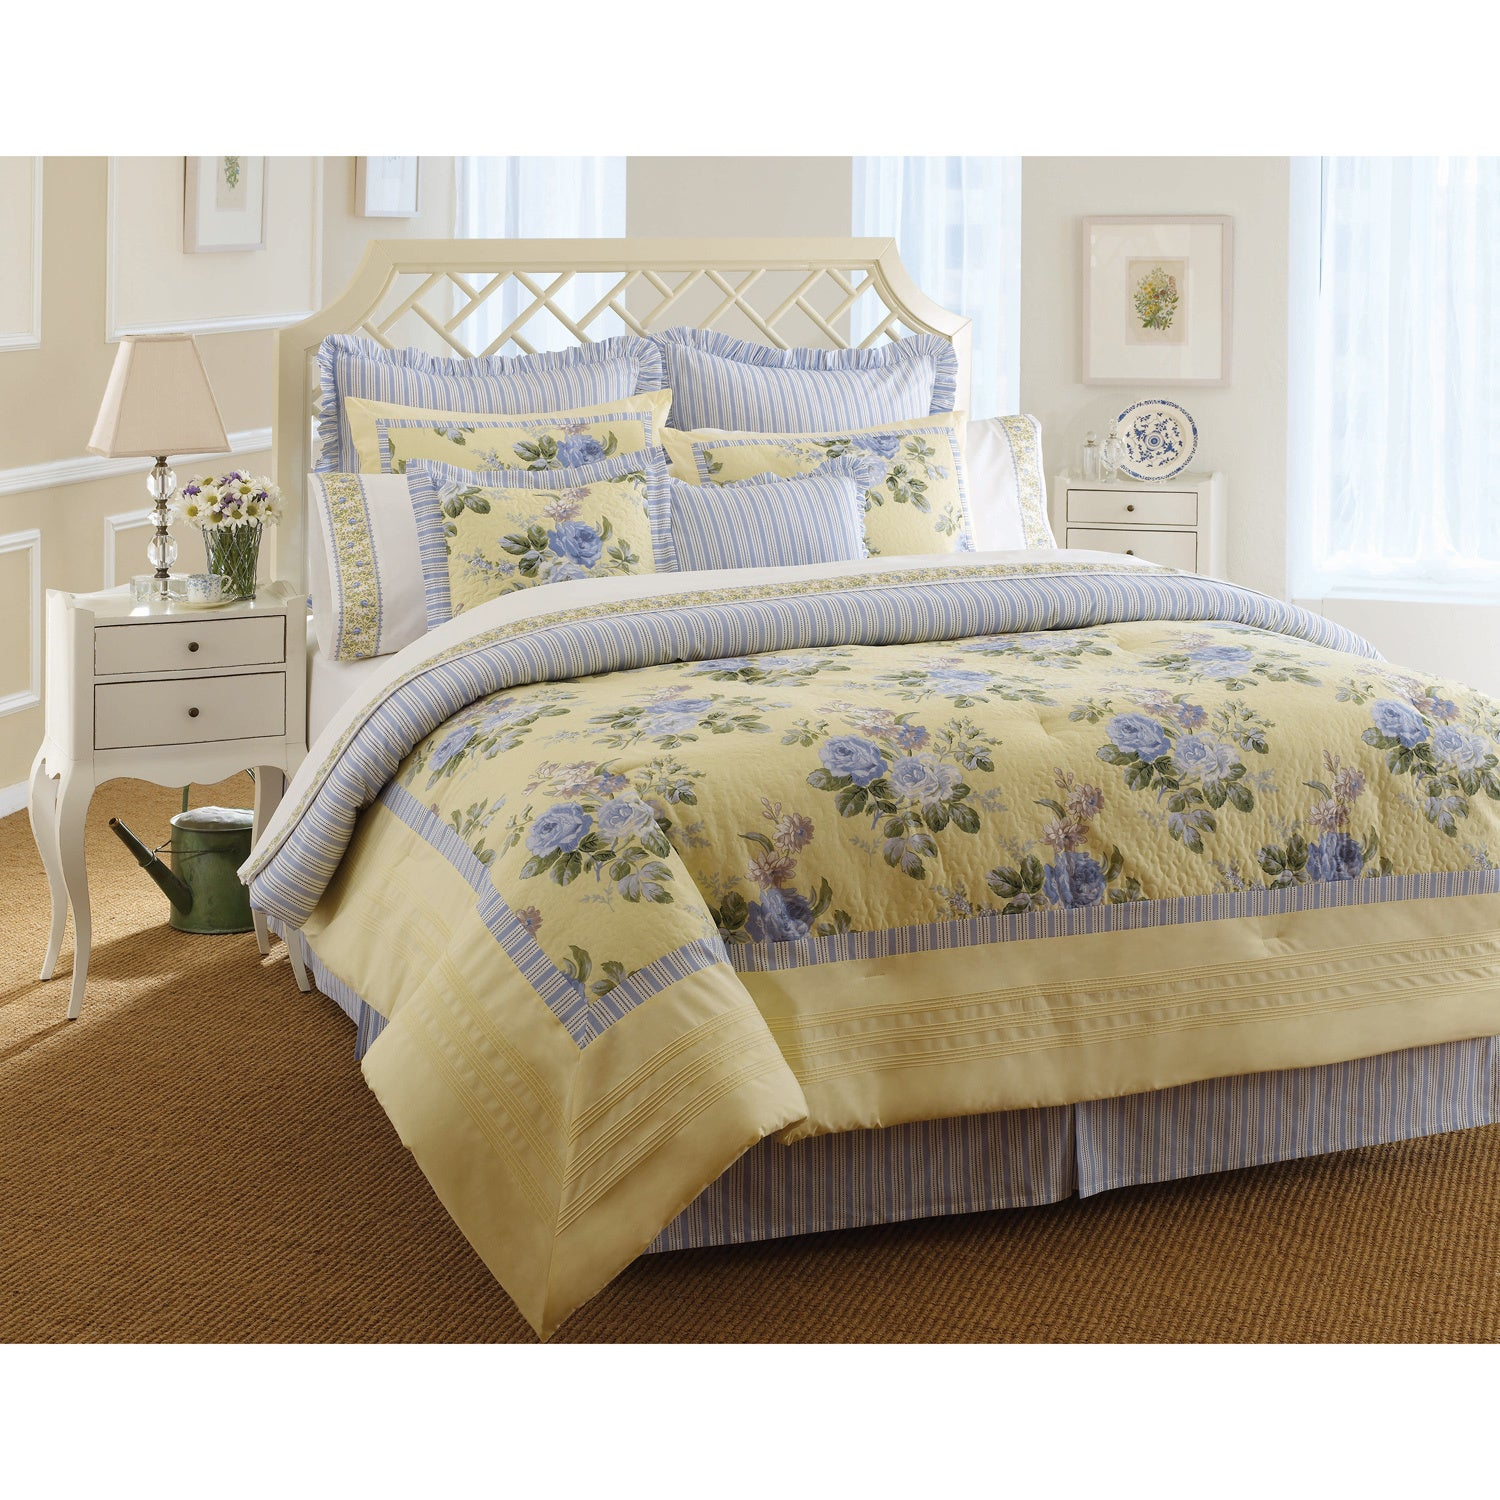 Laura Ashley Caroline 4-pc Comforter Set